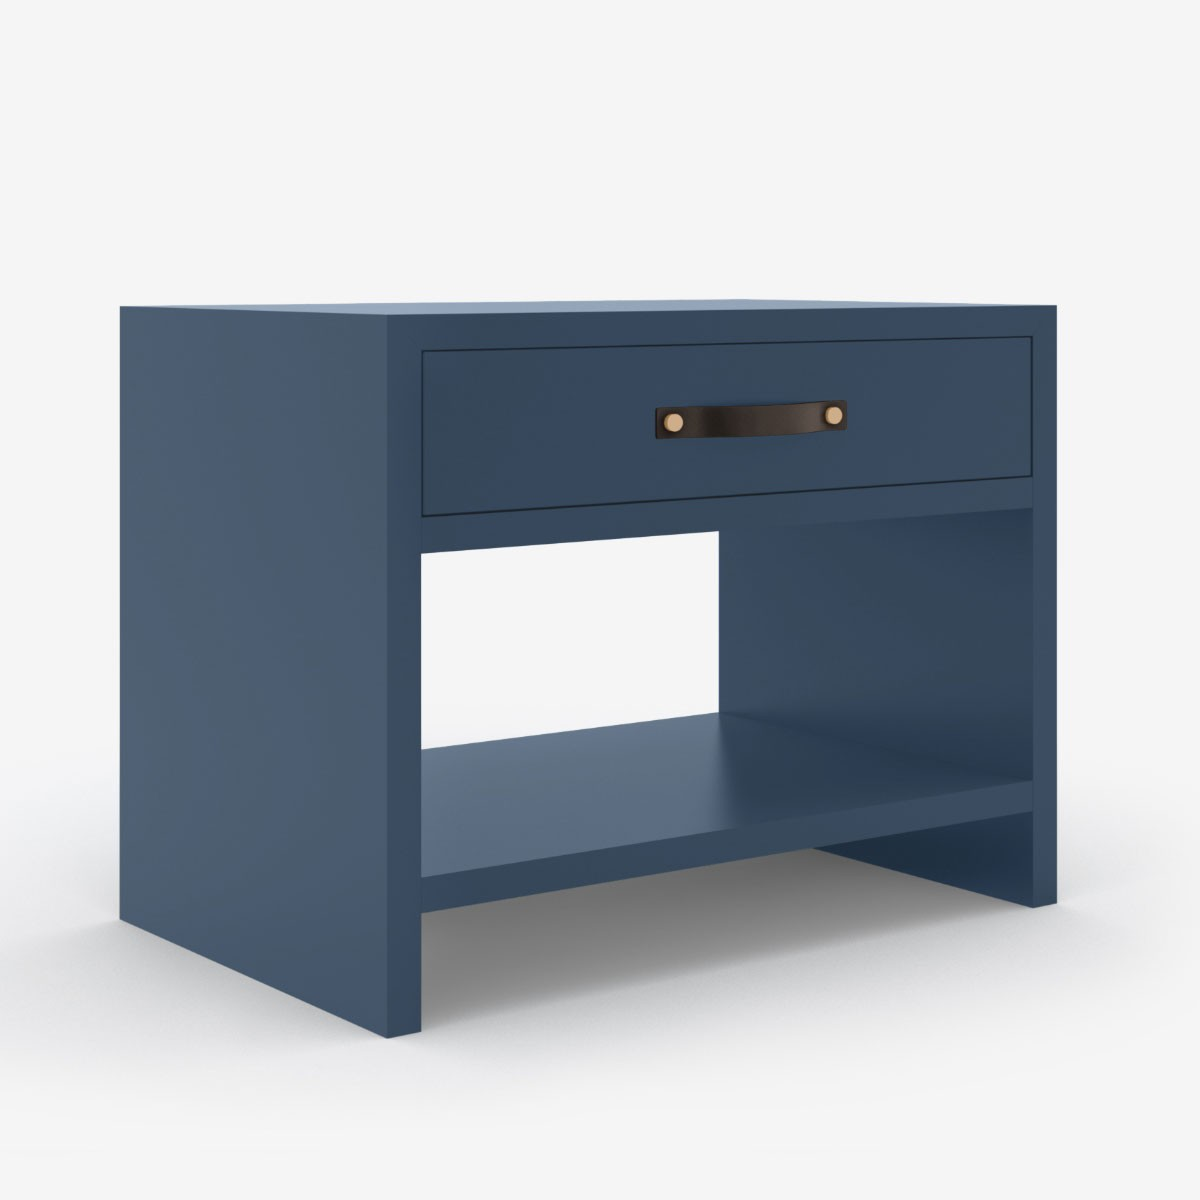 Image shows One Drawer Bedside Off The Floor Drawer Bedside Table in Nordic Blue